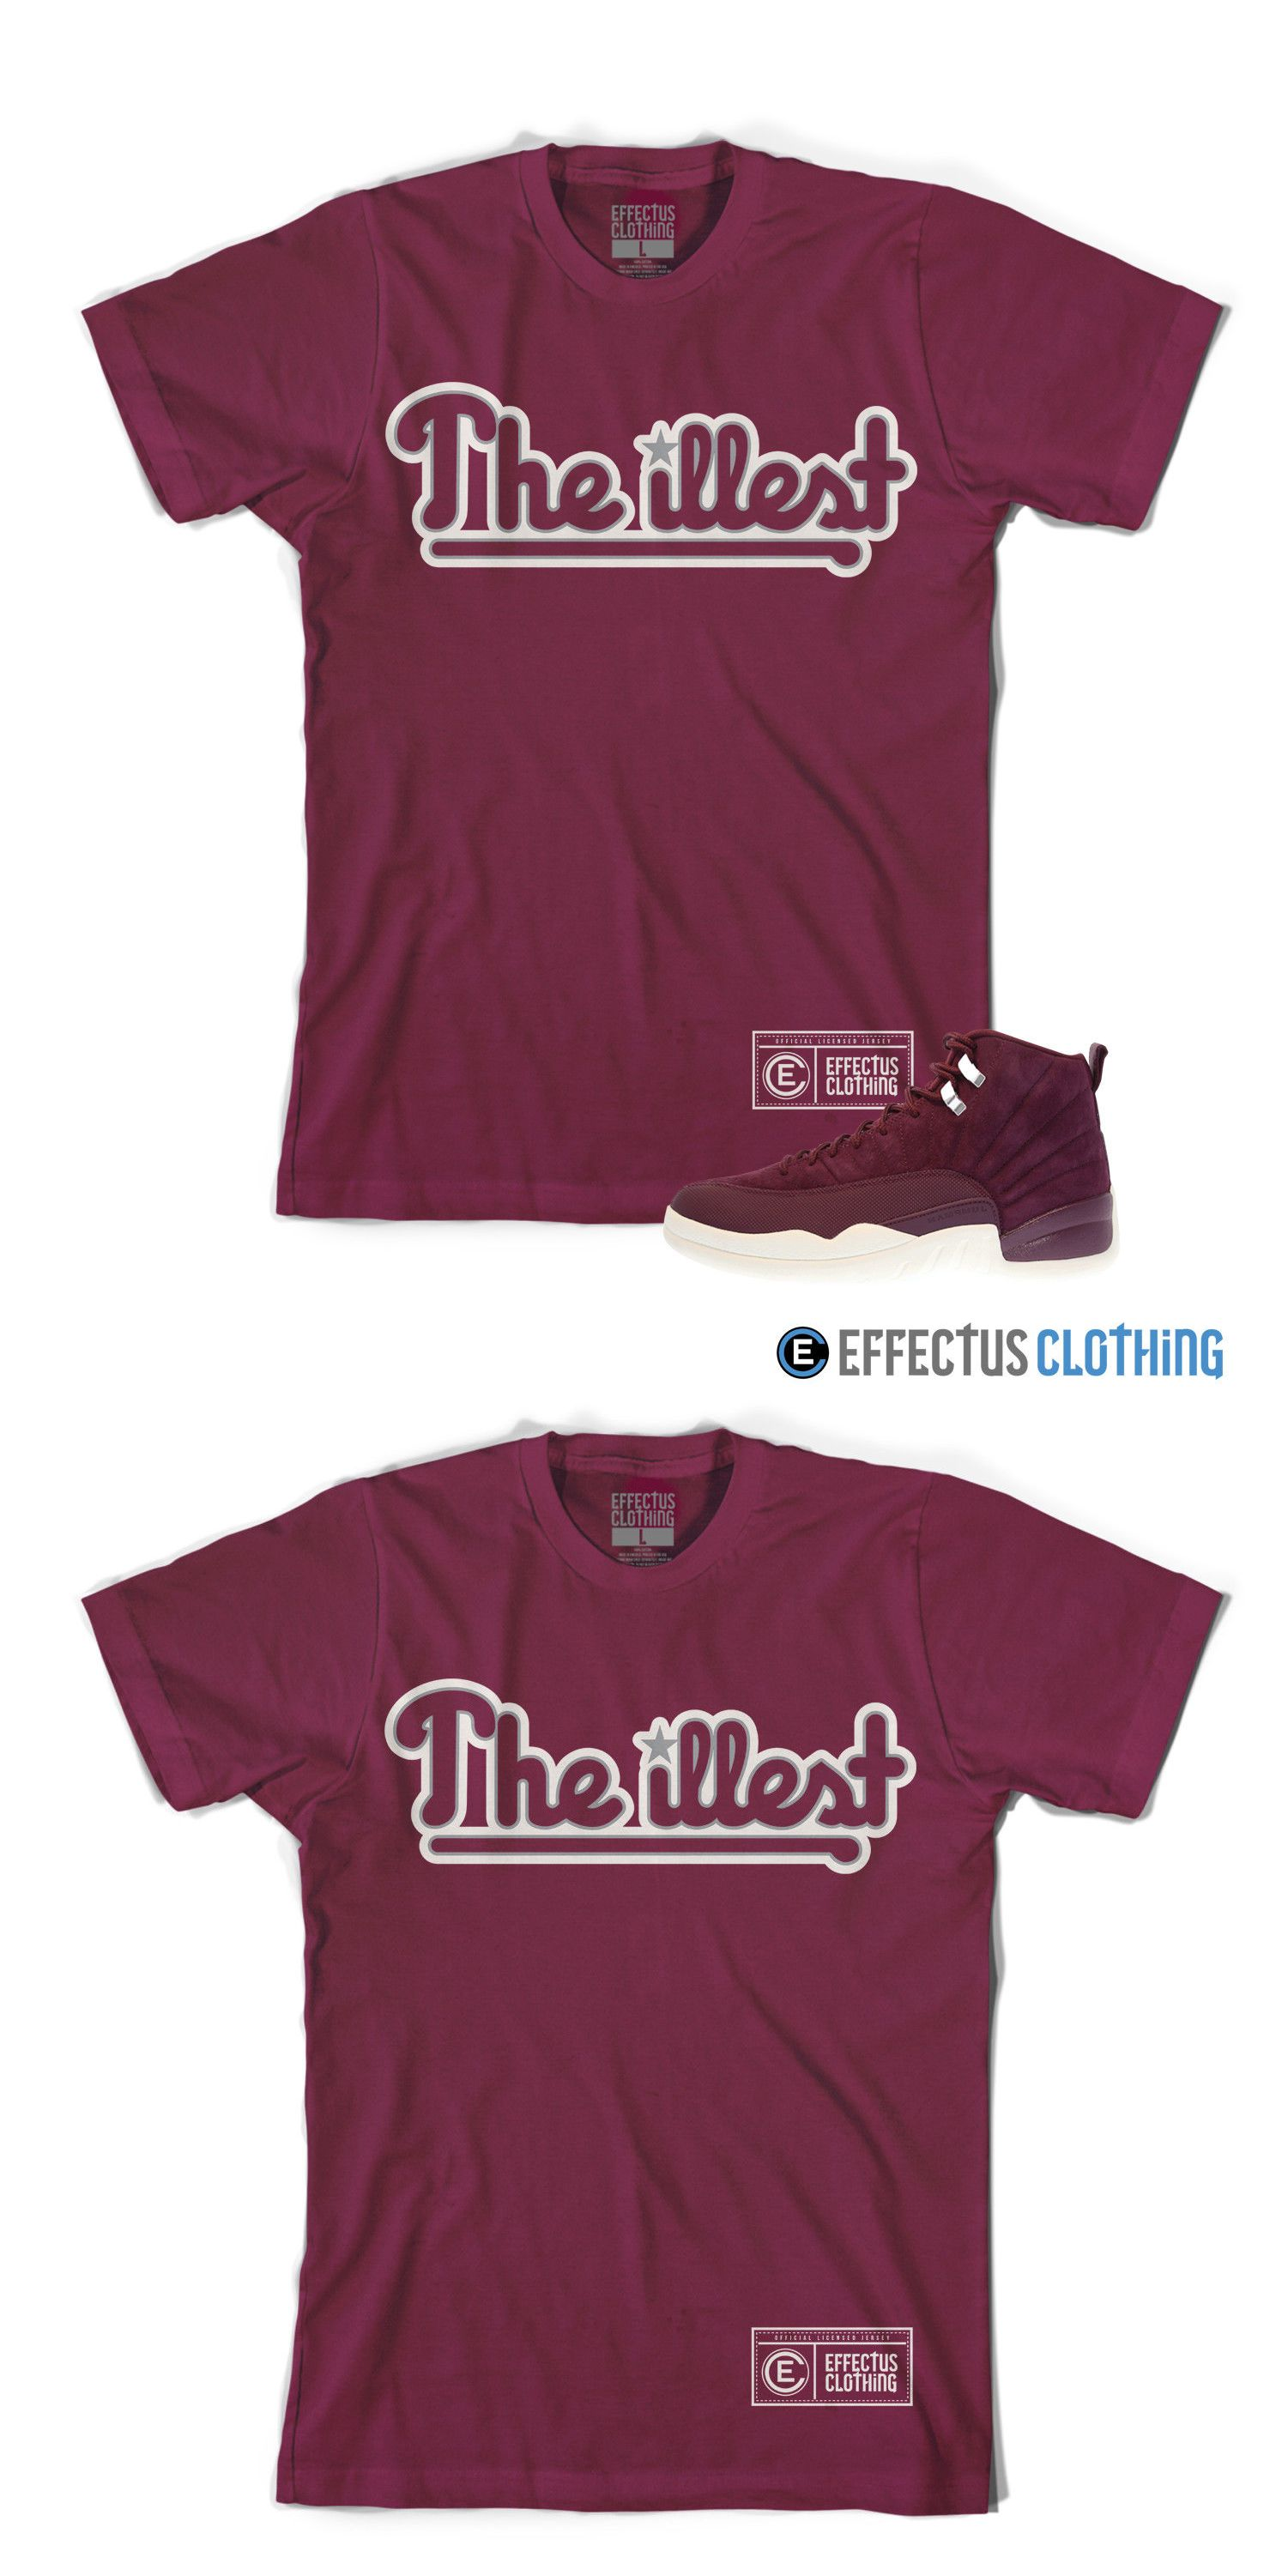 4c037c9b490 T-Shirts 15687: Shirt To Match Air Jordan Retro 12 Bordeaux Sneakers.  Illest Tee -> BUY IT NOW ONLY: $30 on eBay!